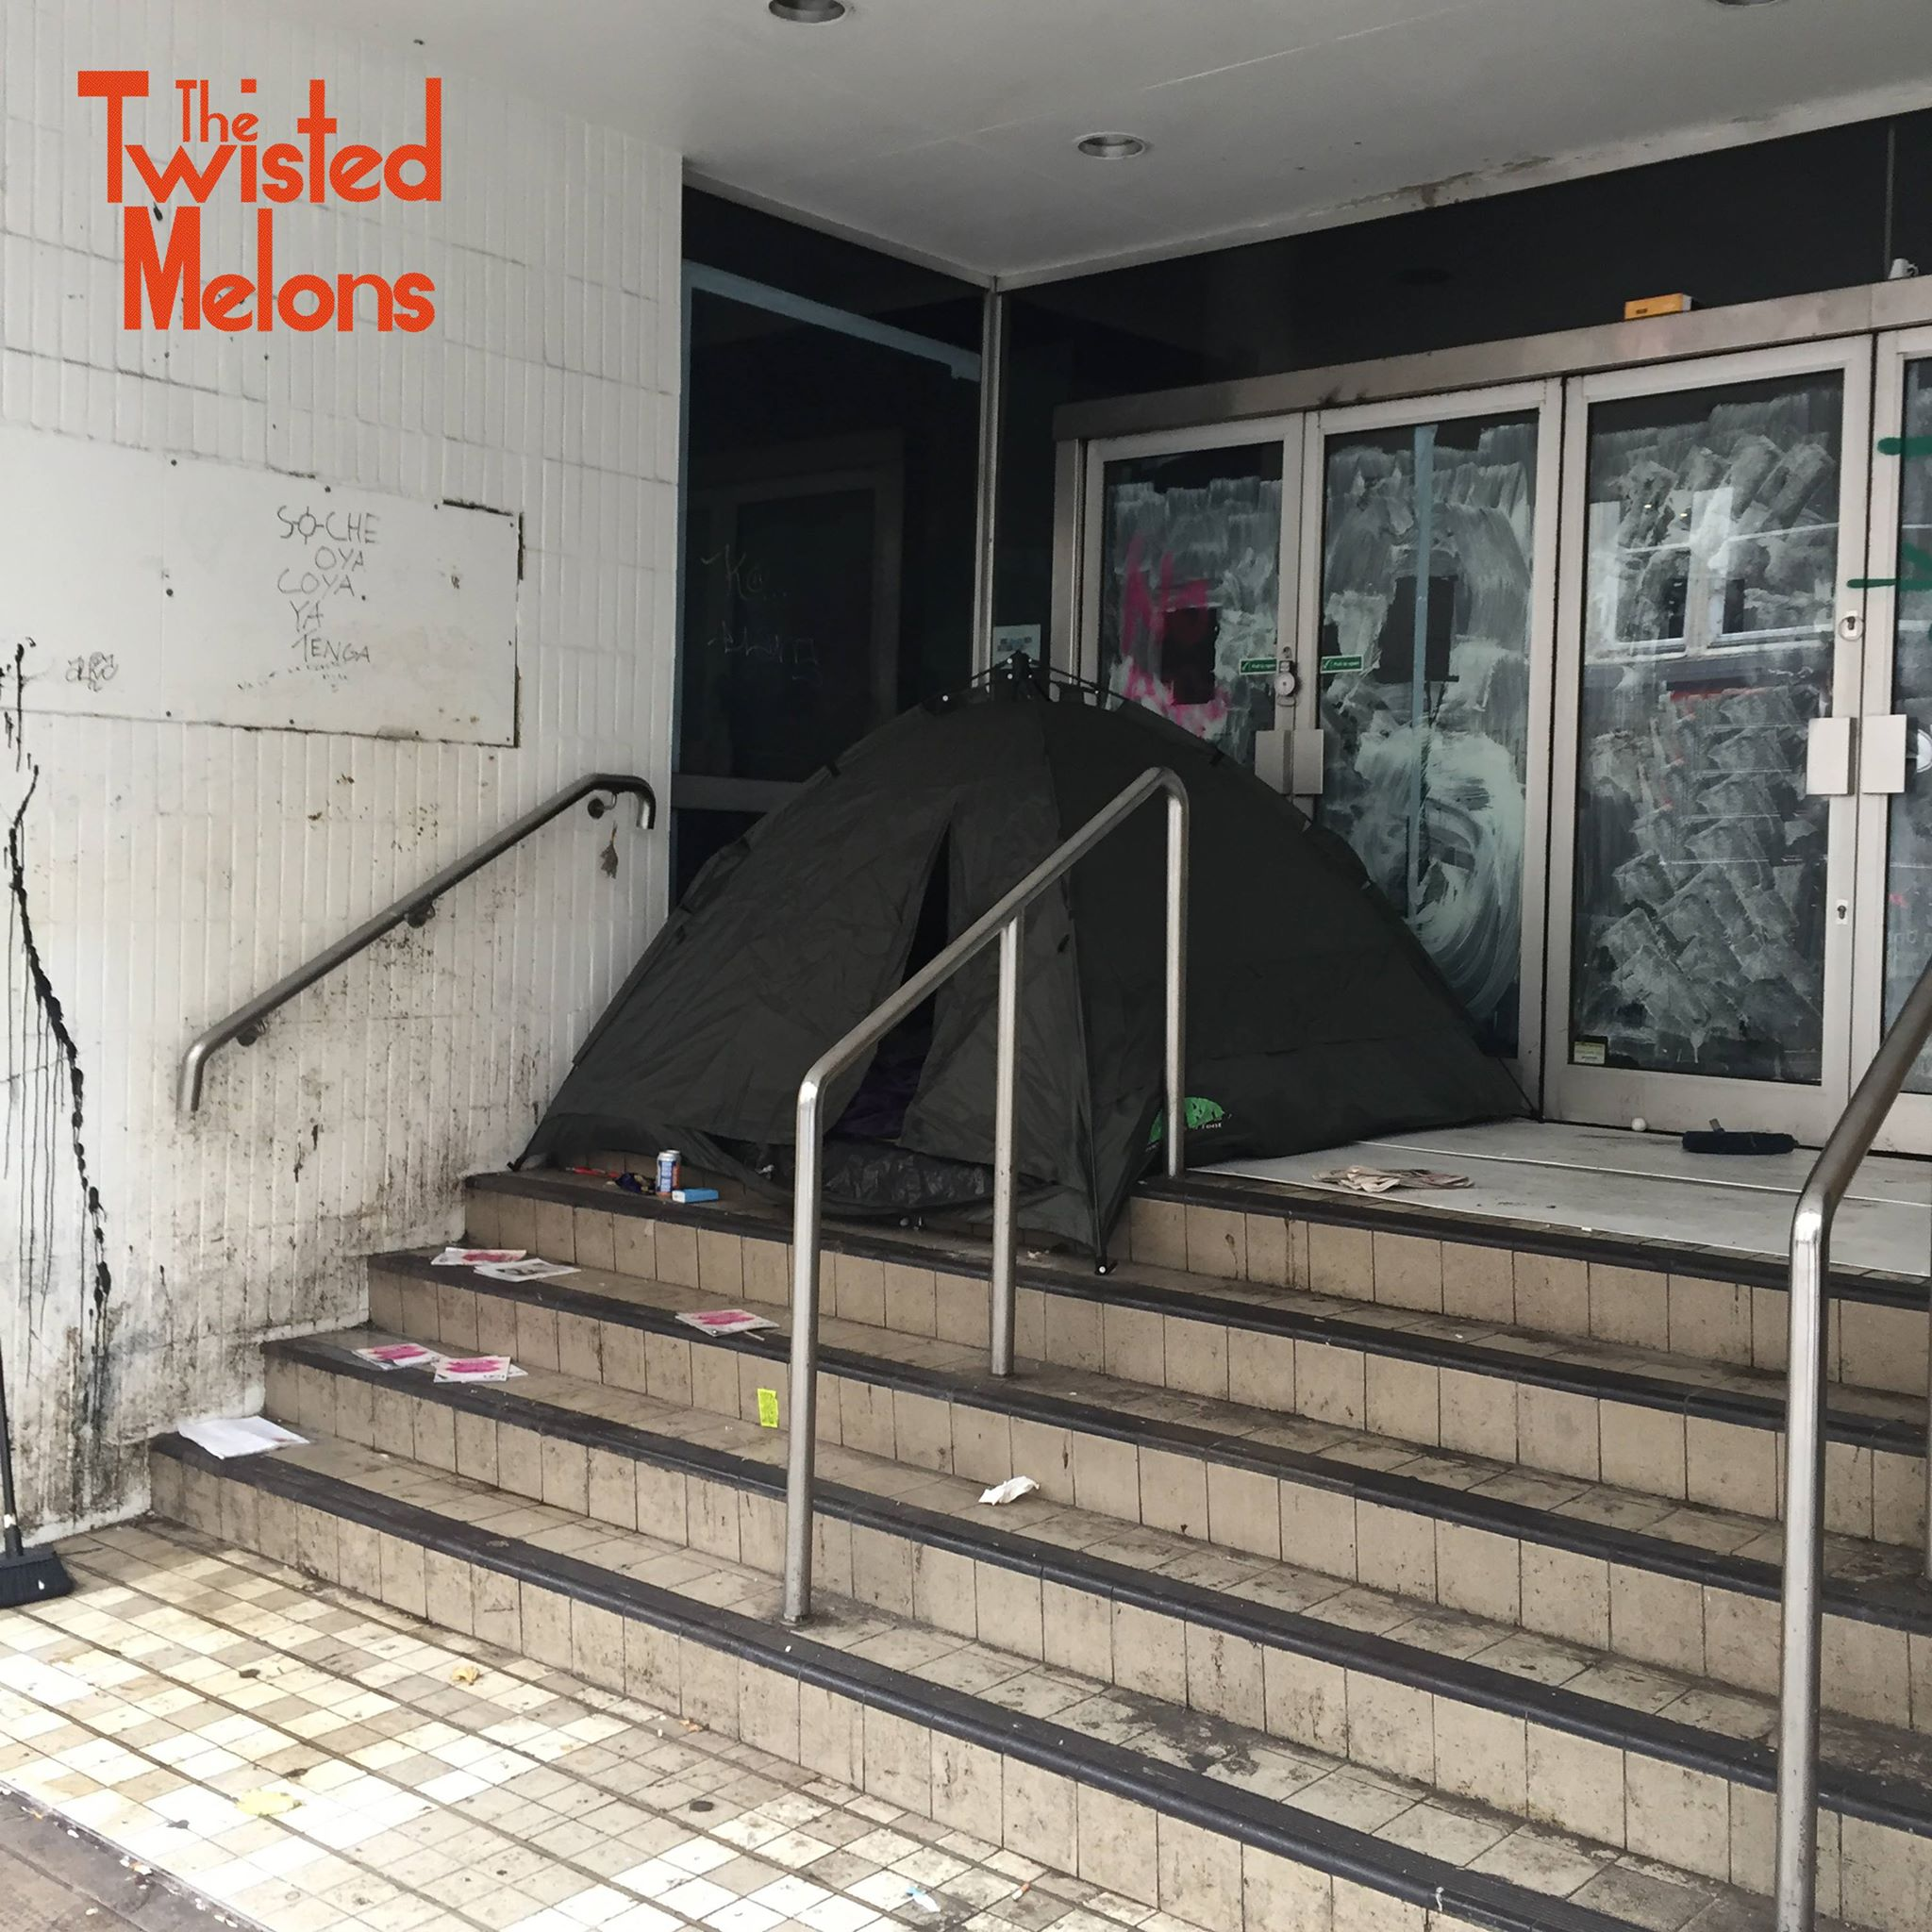 Lyrics Twisted — — Melons Lyrics The Melons Twisted Lyrics The kOTXiwZuP